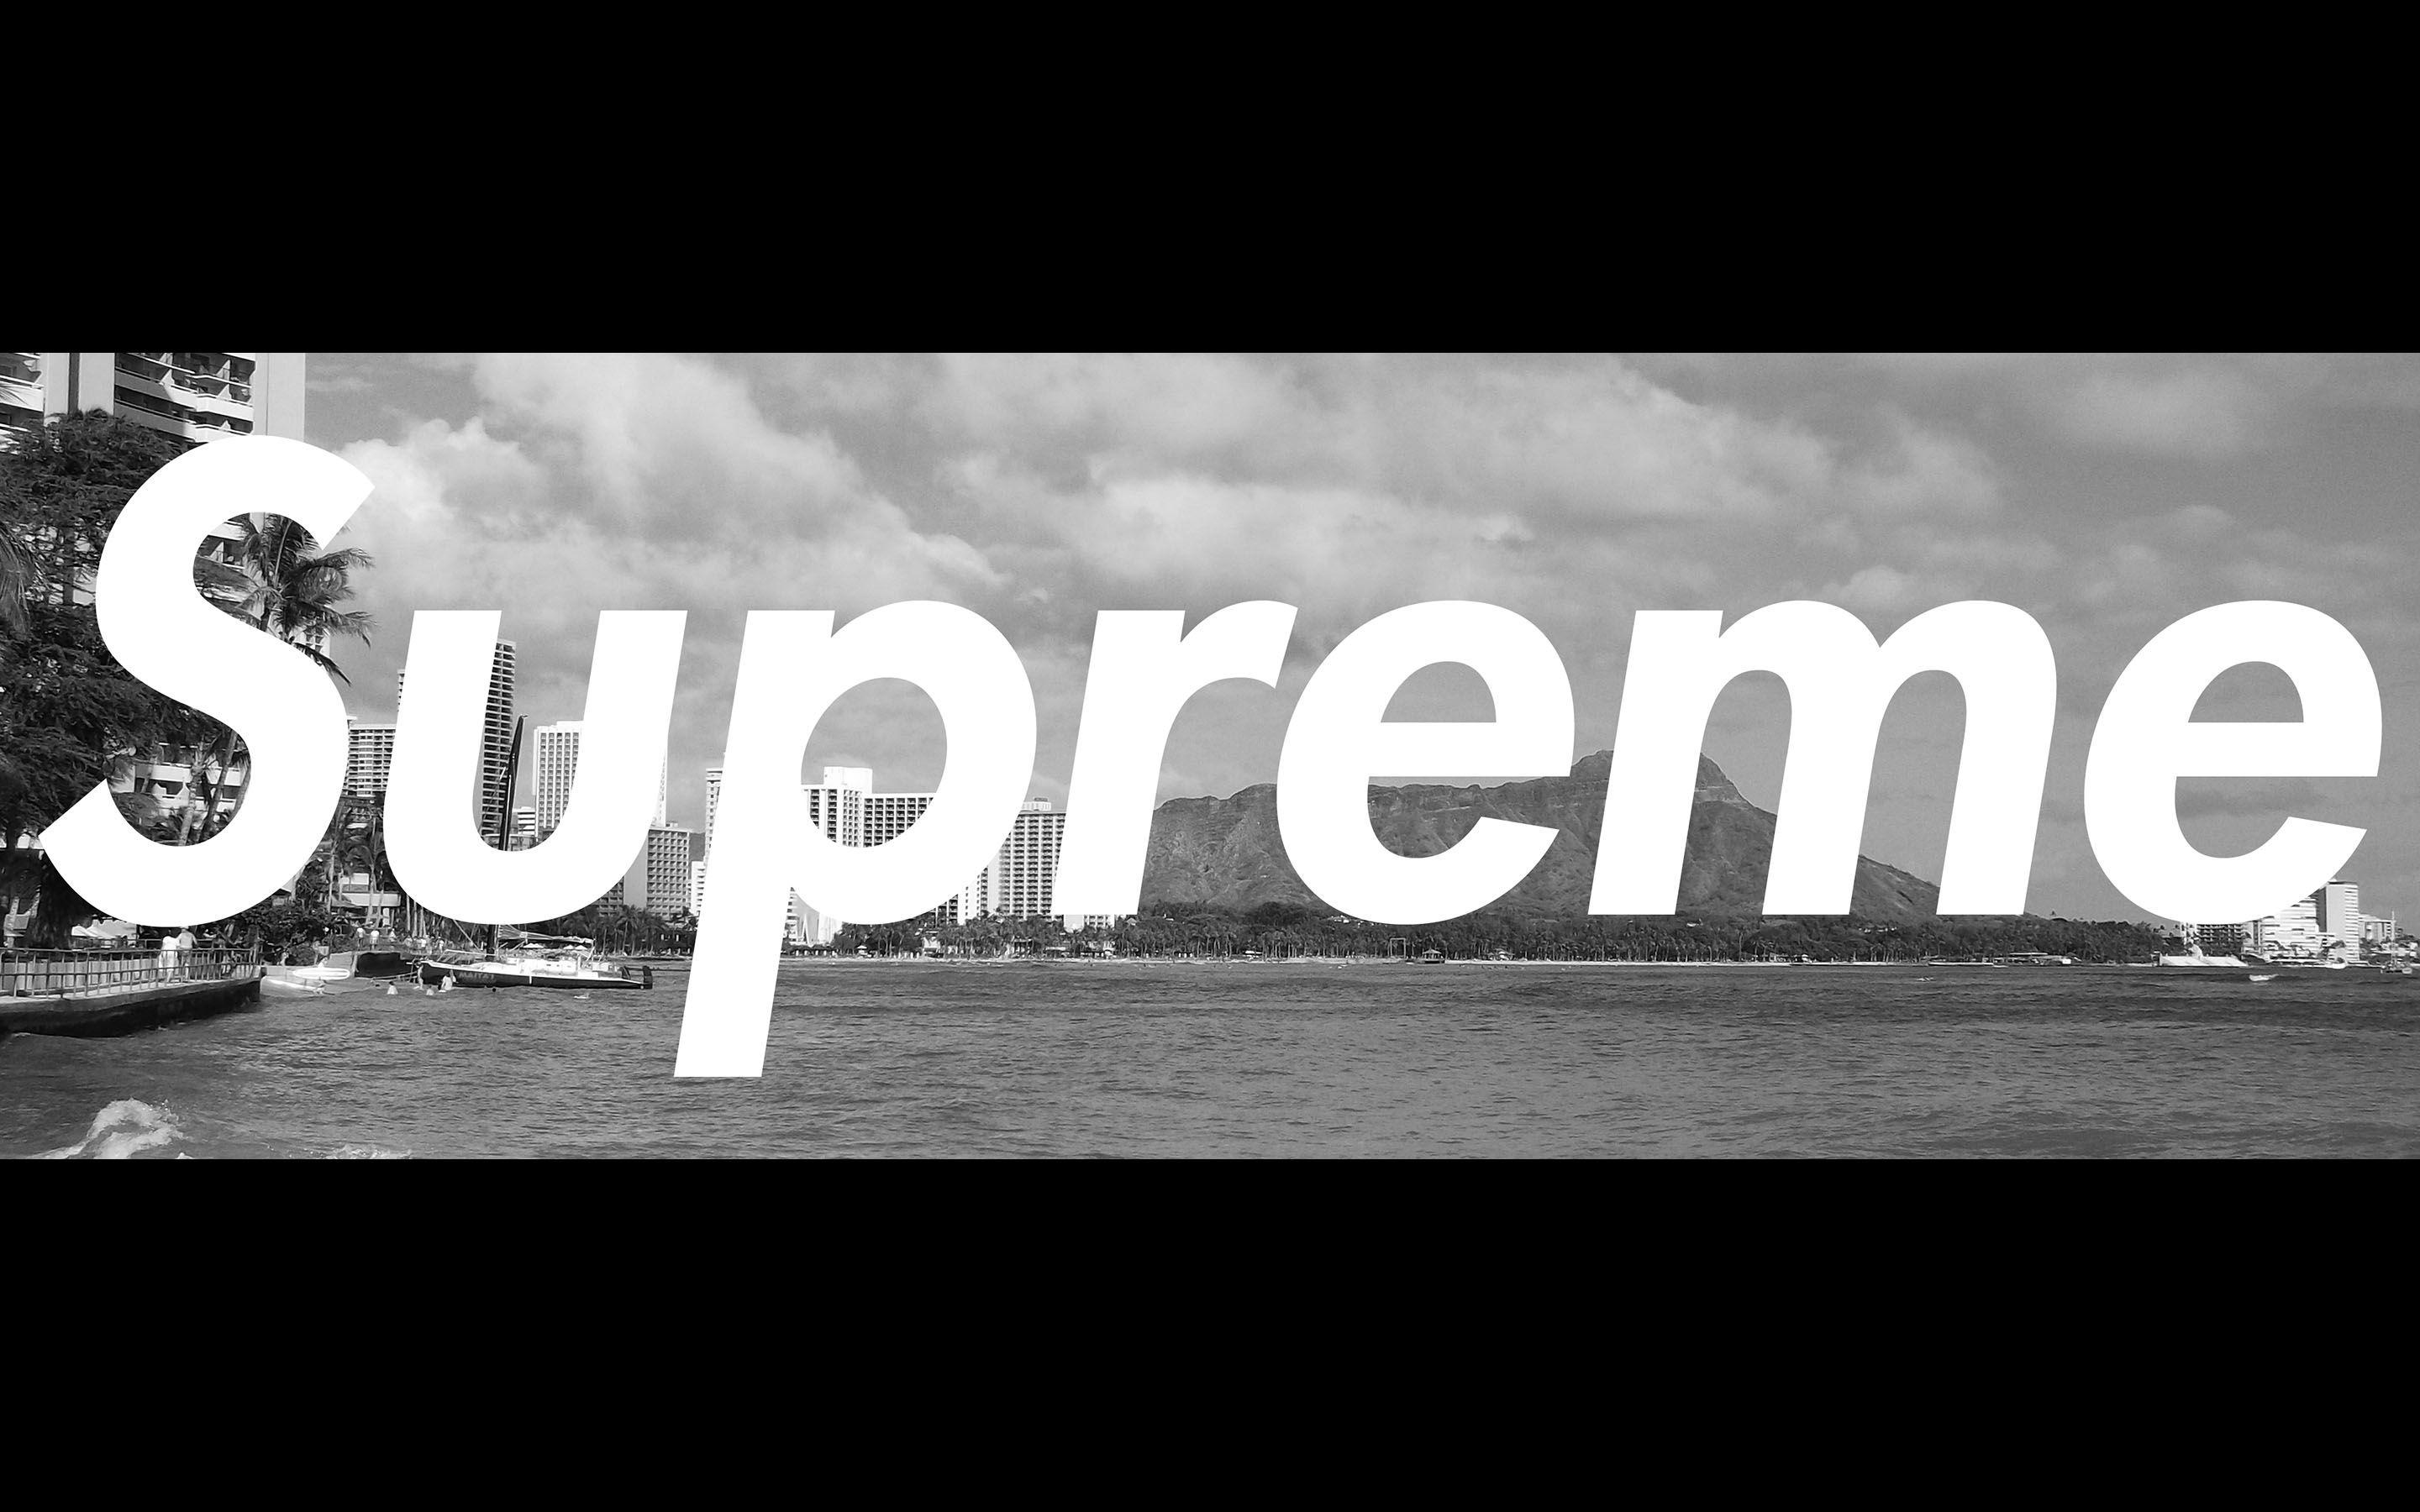 Supreme Wallpaper - HD Wallpapers Backgrounds of Your Choice